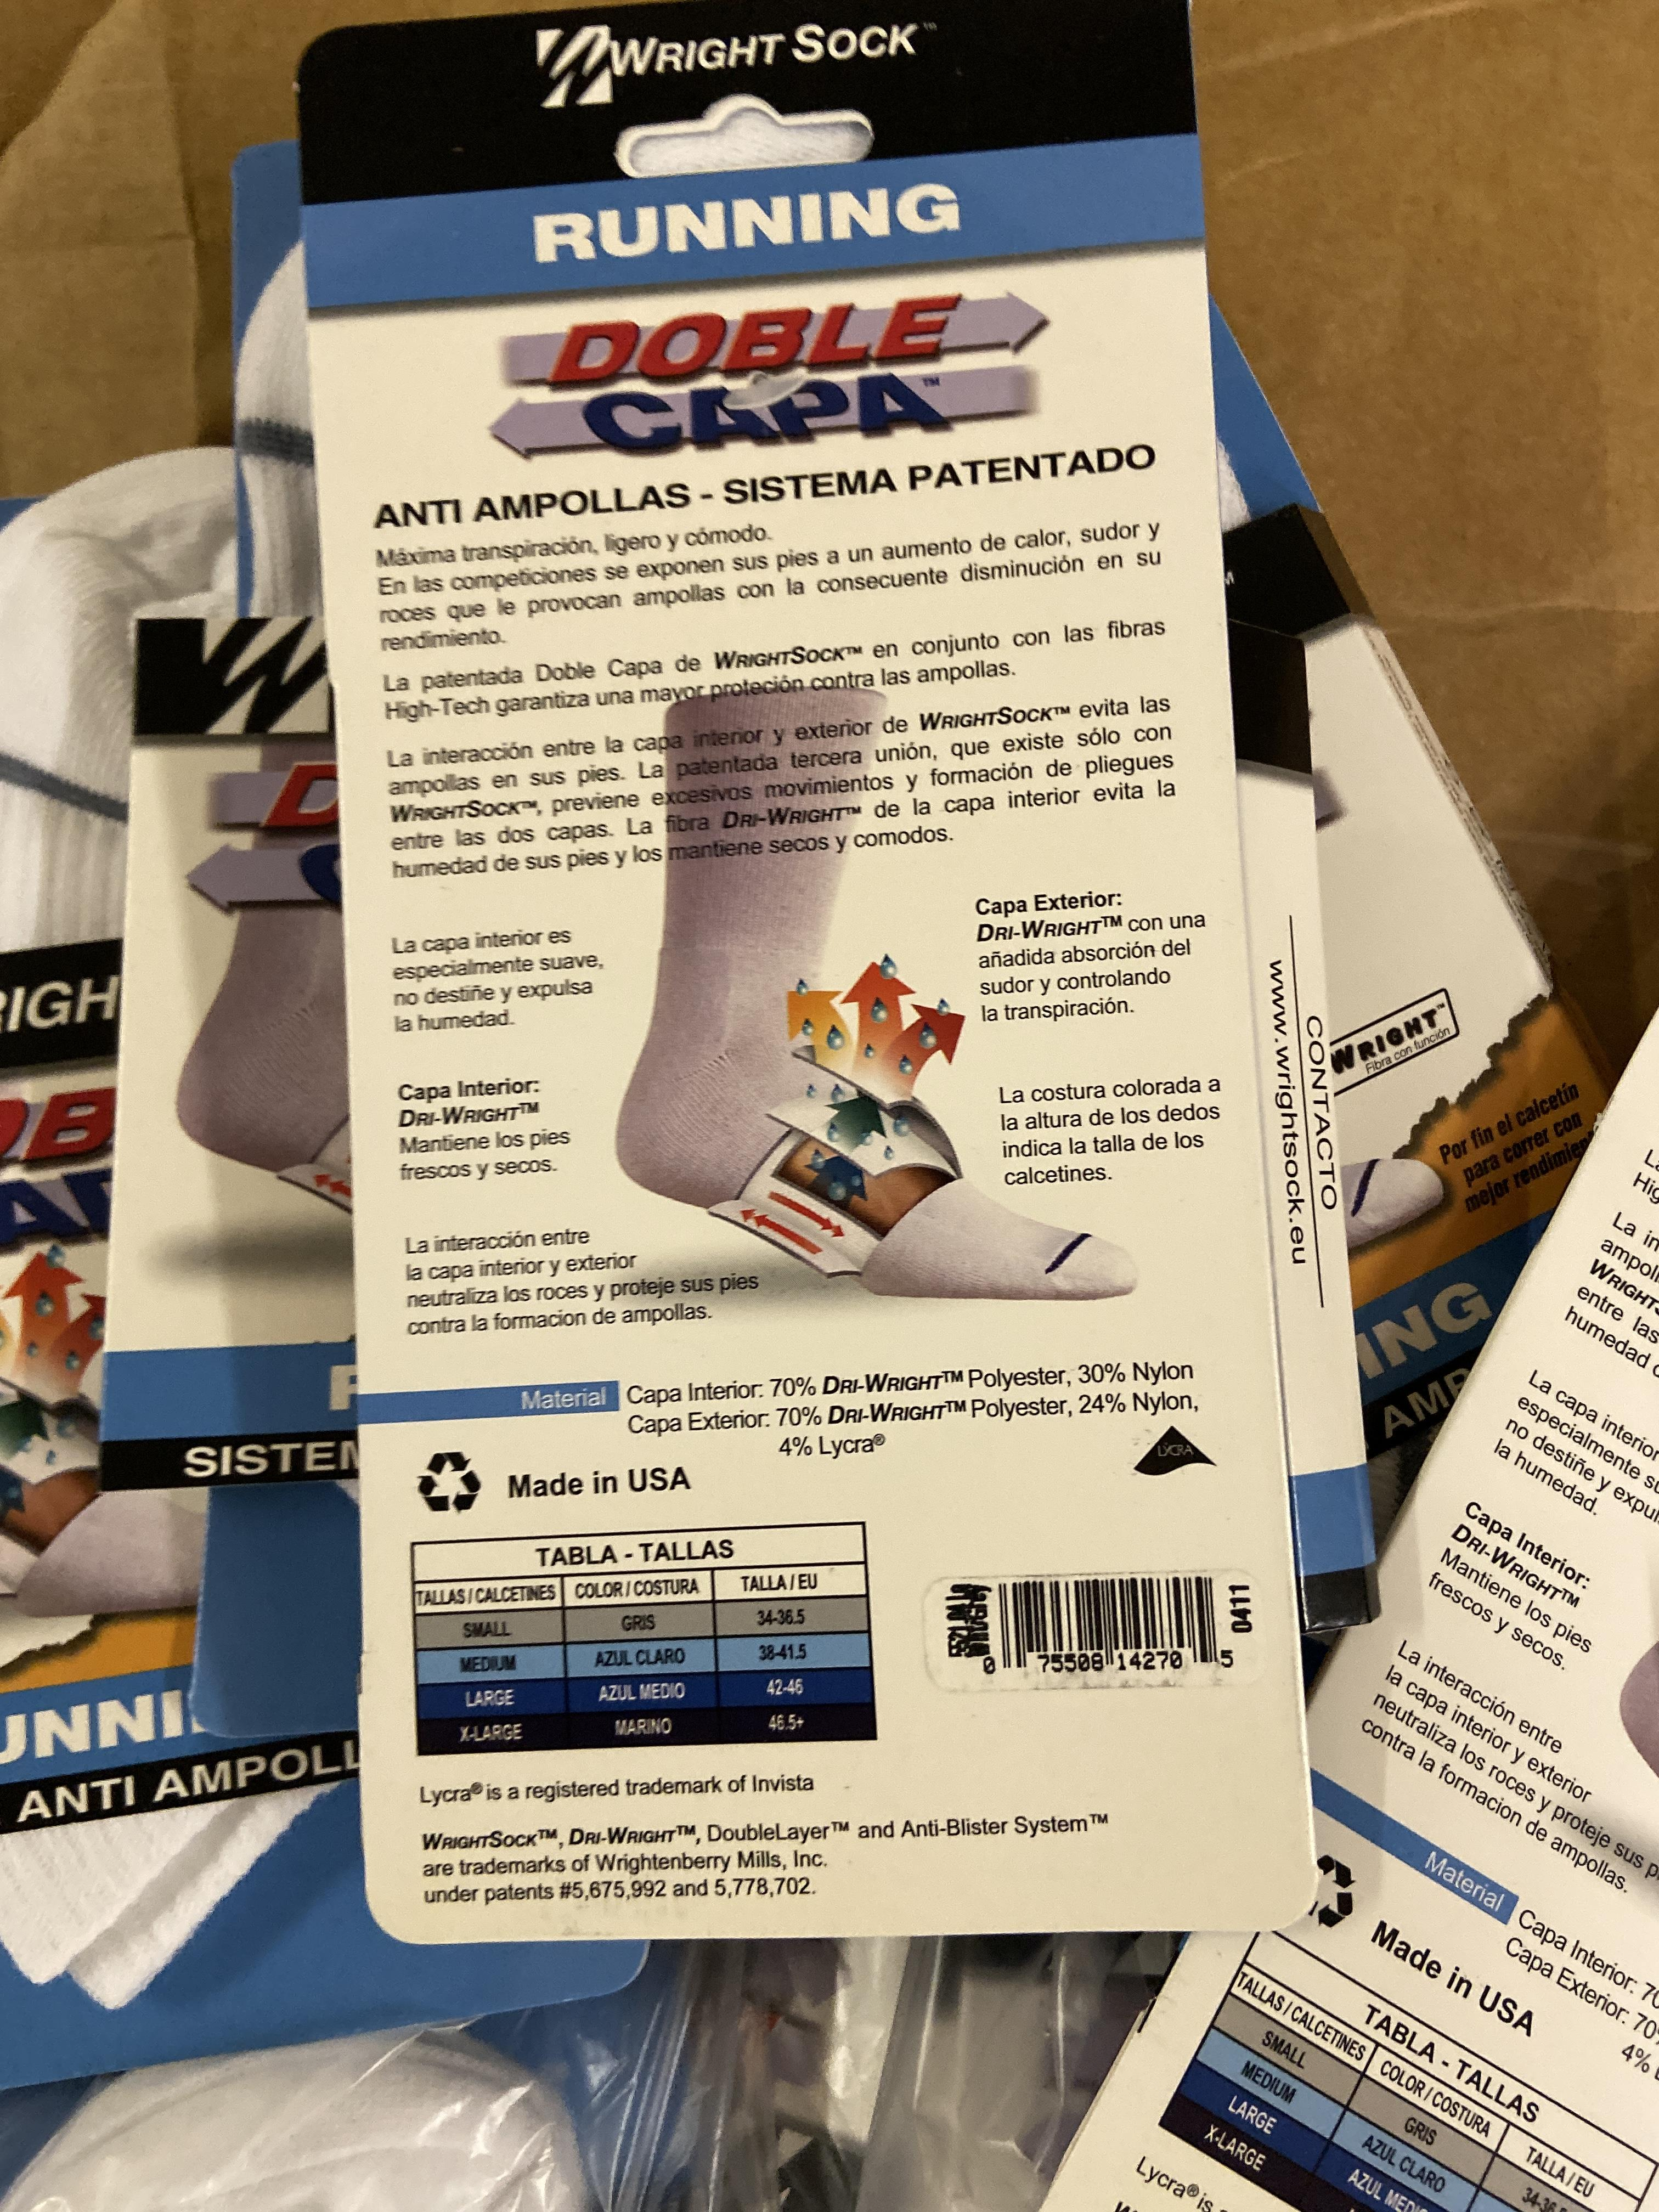 250+ packs of New Socks, Wrightsock Running, Double Layer, White with Gray Stripe - Image 3 of 3